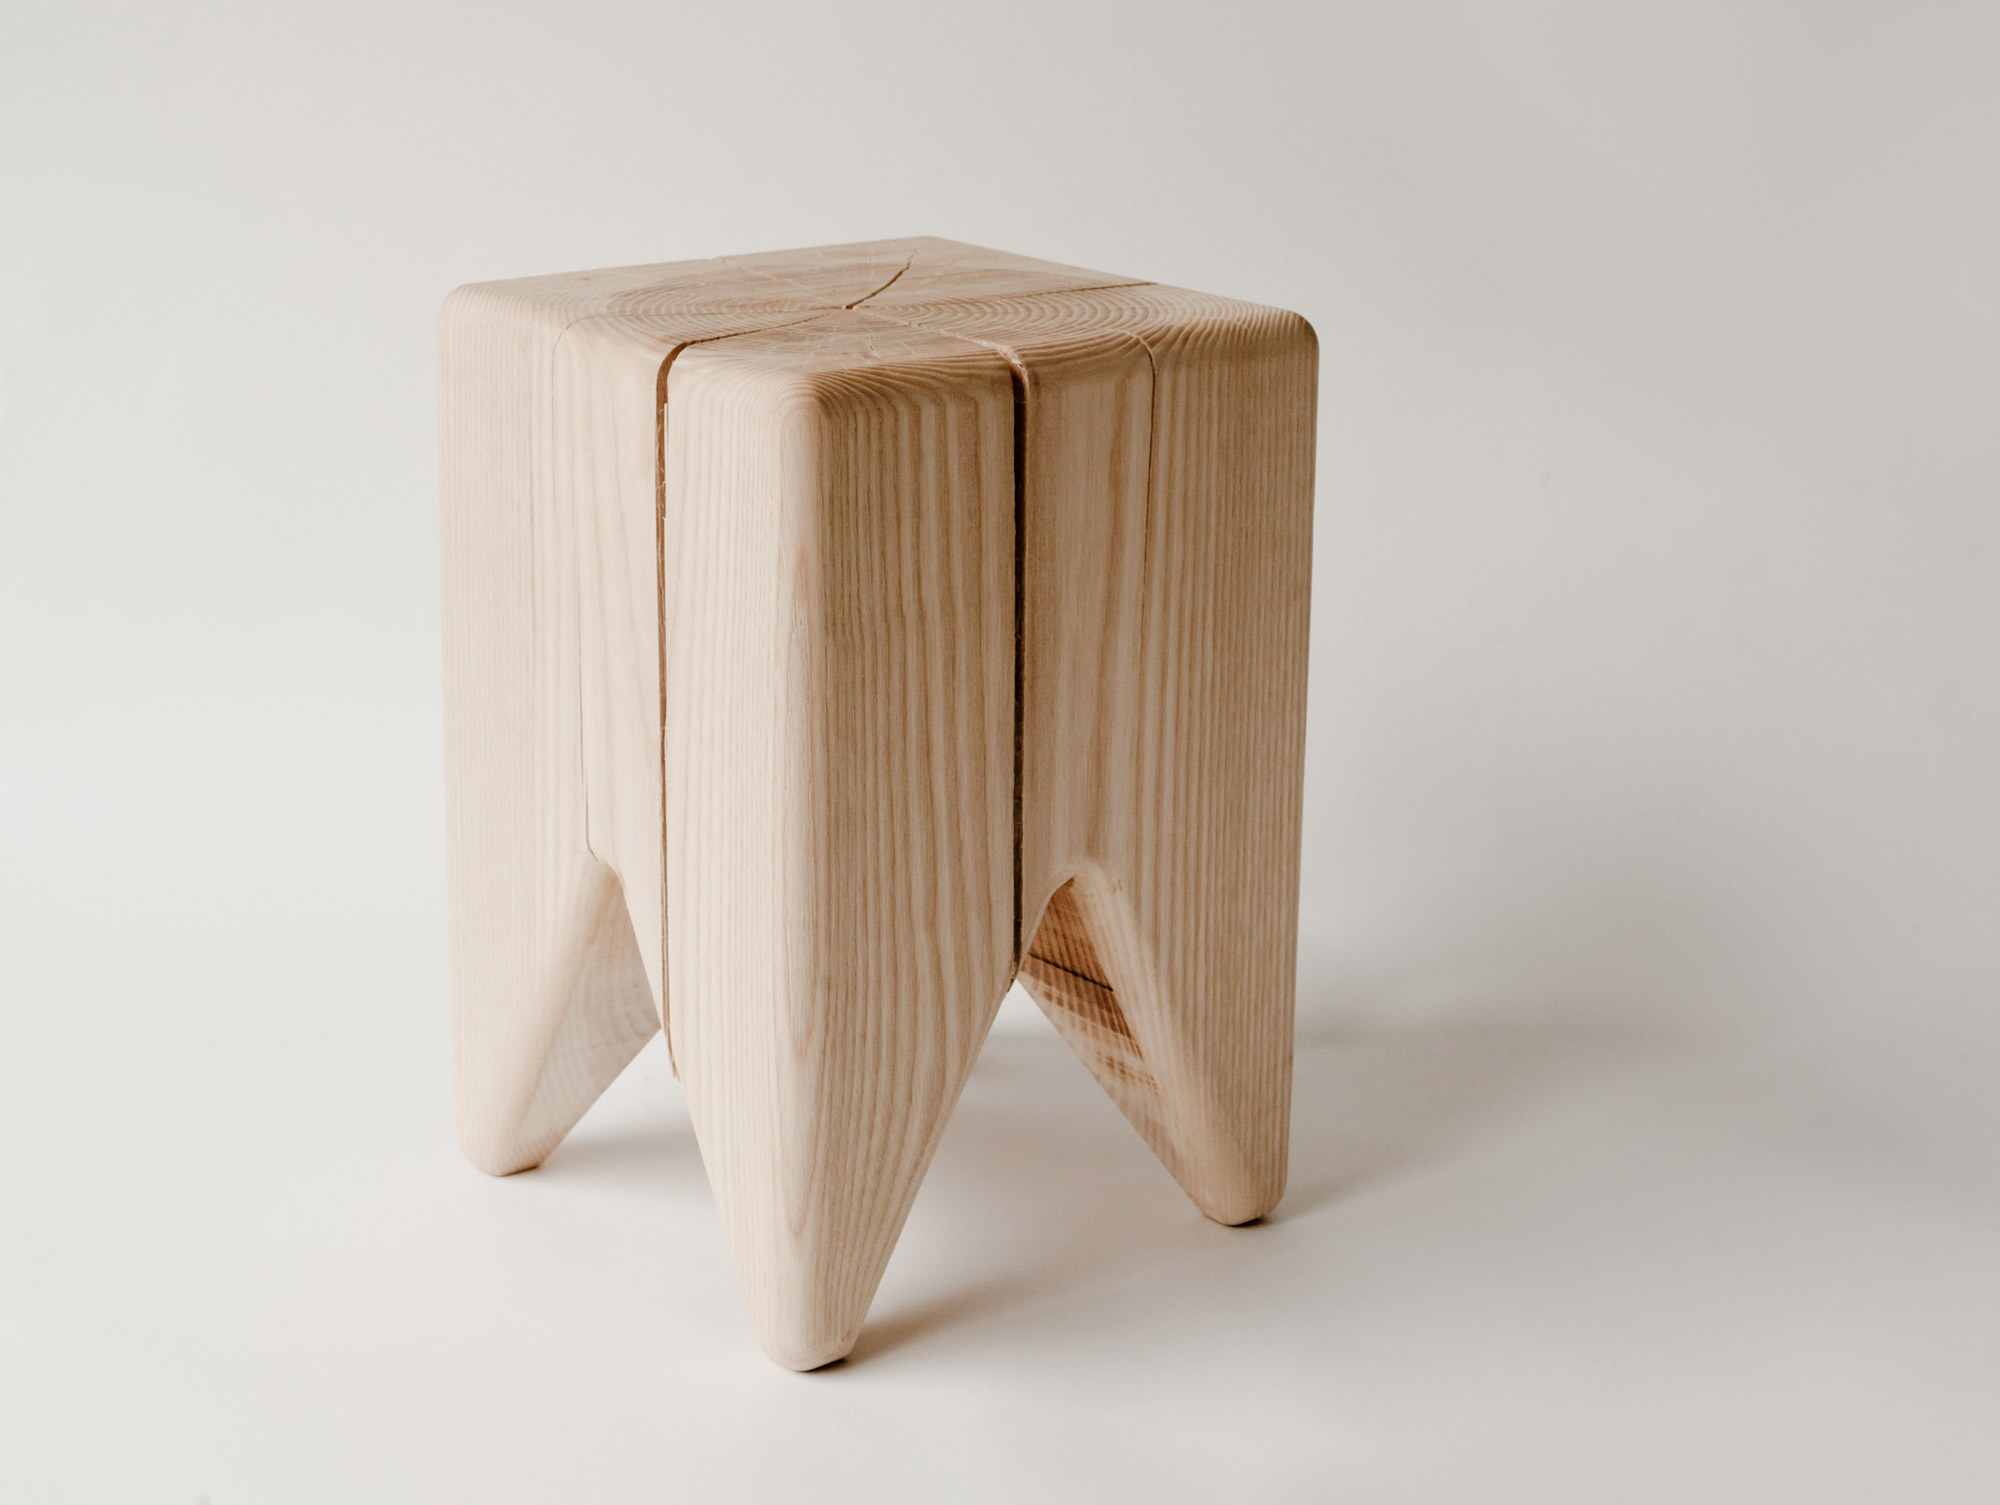 Wood stump in raw ash or maple